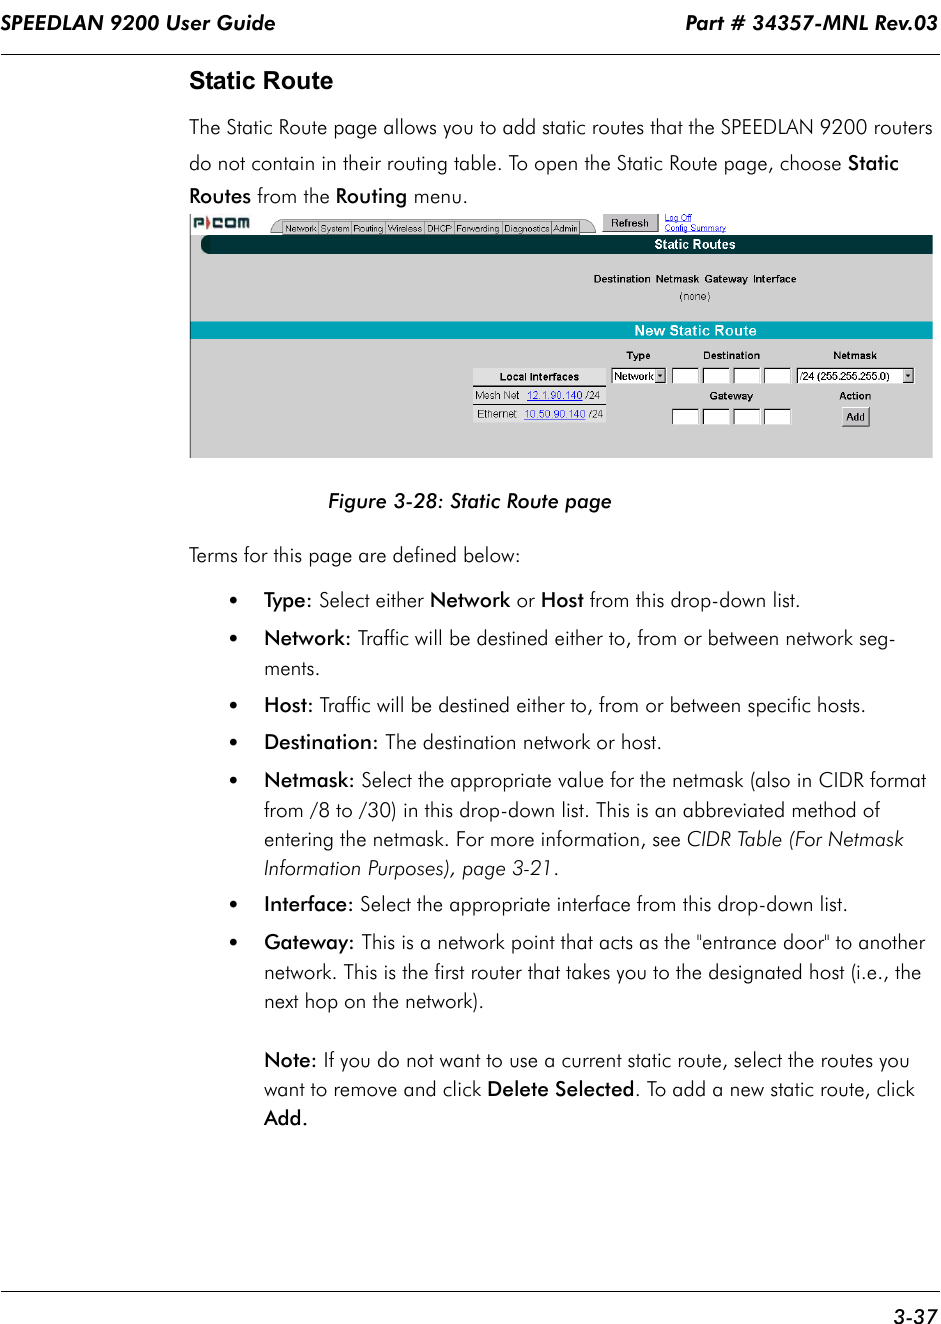 """SPEEDLAN 9200 User Guide                                                                    Part # 34357-MNL Rev.03      3-37                                                                                                                                                              Static RouteThe Static Route page allows you to add static routes that the SPEEDLAN 9200 routers do not contain in their routing table. To open the Static Route page, choose Static Routes from the Routing menu.  Figure 3-28: Static Route pageTerms for this page are defined below:•Type: Select either Network or Host from this drop-down list. •Network: Traffic will be destined either to, from or between network seg-ments. •Host: Traffic will be destined either to, from or between specific hosts.•Destination: The destination network or host.•Netmask: Select the appropriate value for the netmask (also in CIDR format from /8 to /30) in this drop-down list. This is an abbreviated method of entering the netmask. For more information, see CIDR Table (For Netmask Information Purposes), page 3-21.•Interface: Select the appropriate interface from this drop-down list.•Gateway: This is a network point that acts as the """"entrance door"""" to another network. This is the first router that takes you to the designated host (i.e., the next hop on the network). Note: If you do not want to use a current static route, select the routes you want to remove and click Delete Selected. To add a new static route, click Add...."""